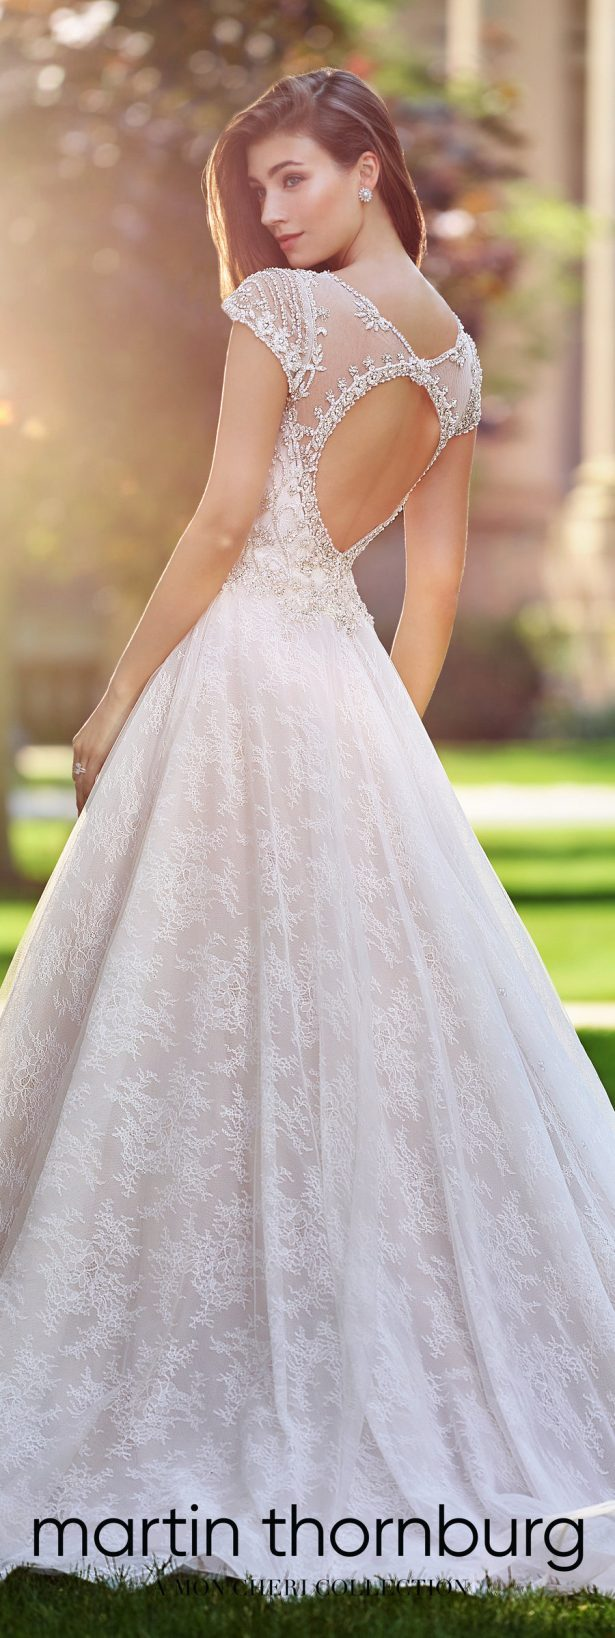 World exclusive wedding dresses spring 2018 by martin thornburg wedding dresses by martin thornburg a mon cheri collection spring 2018 ombrellifo Images